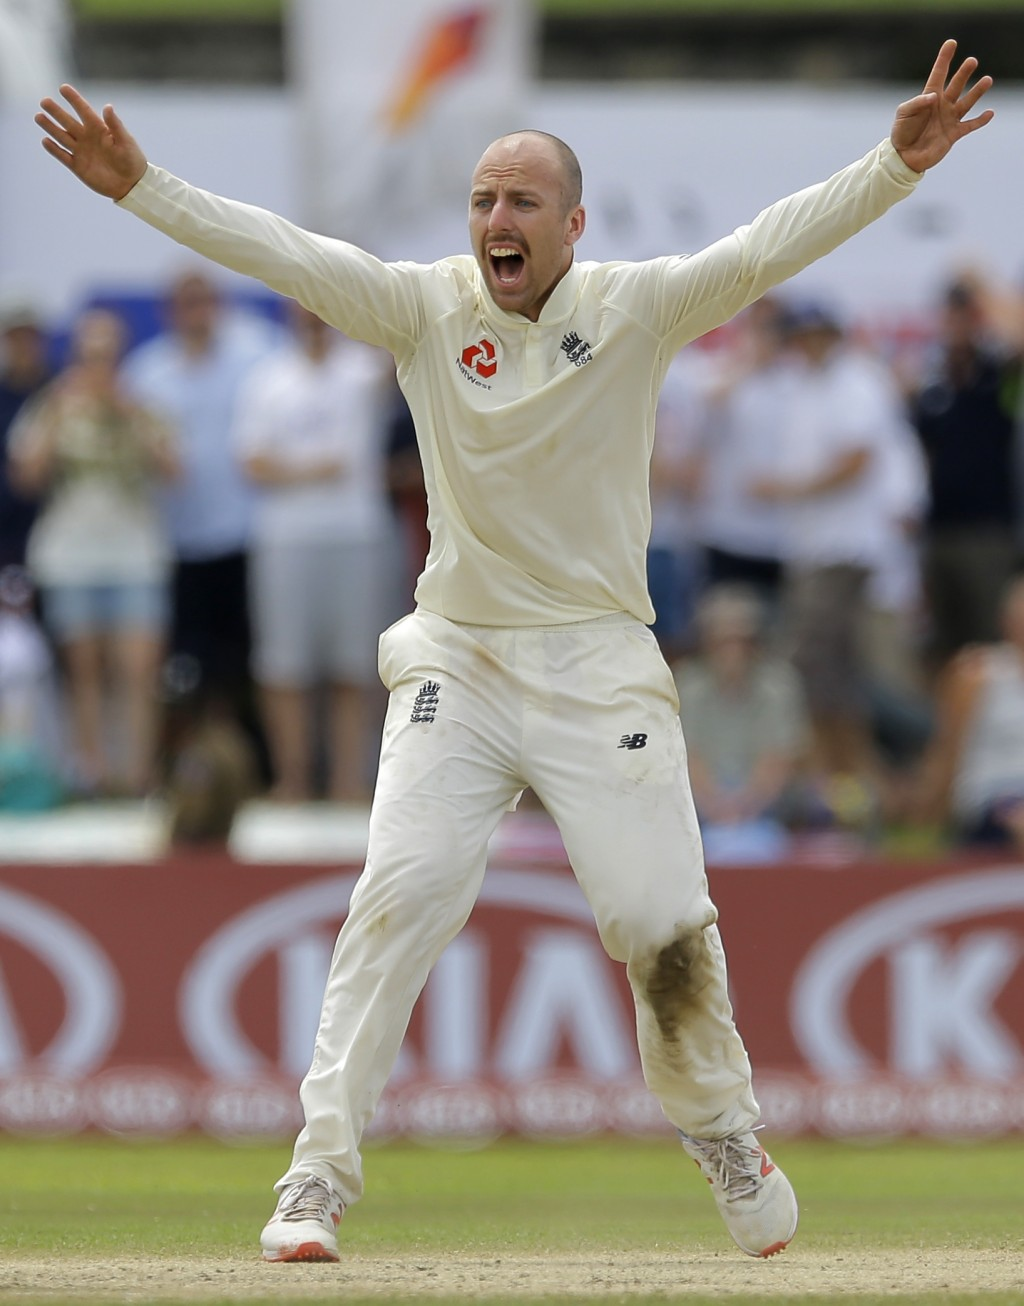 England's Jack Leach successfully appeals to dismiss Sri Lanka's Kaushal Silva during the fourth day of the first test cricket match between Sri Lanka